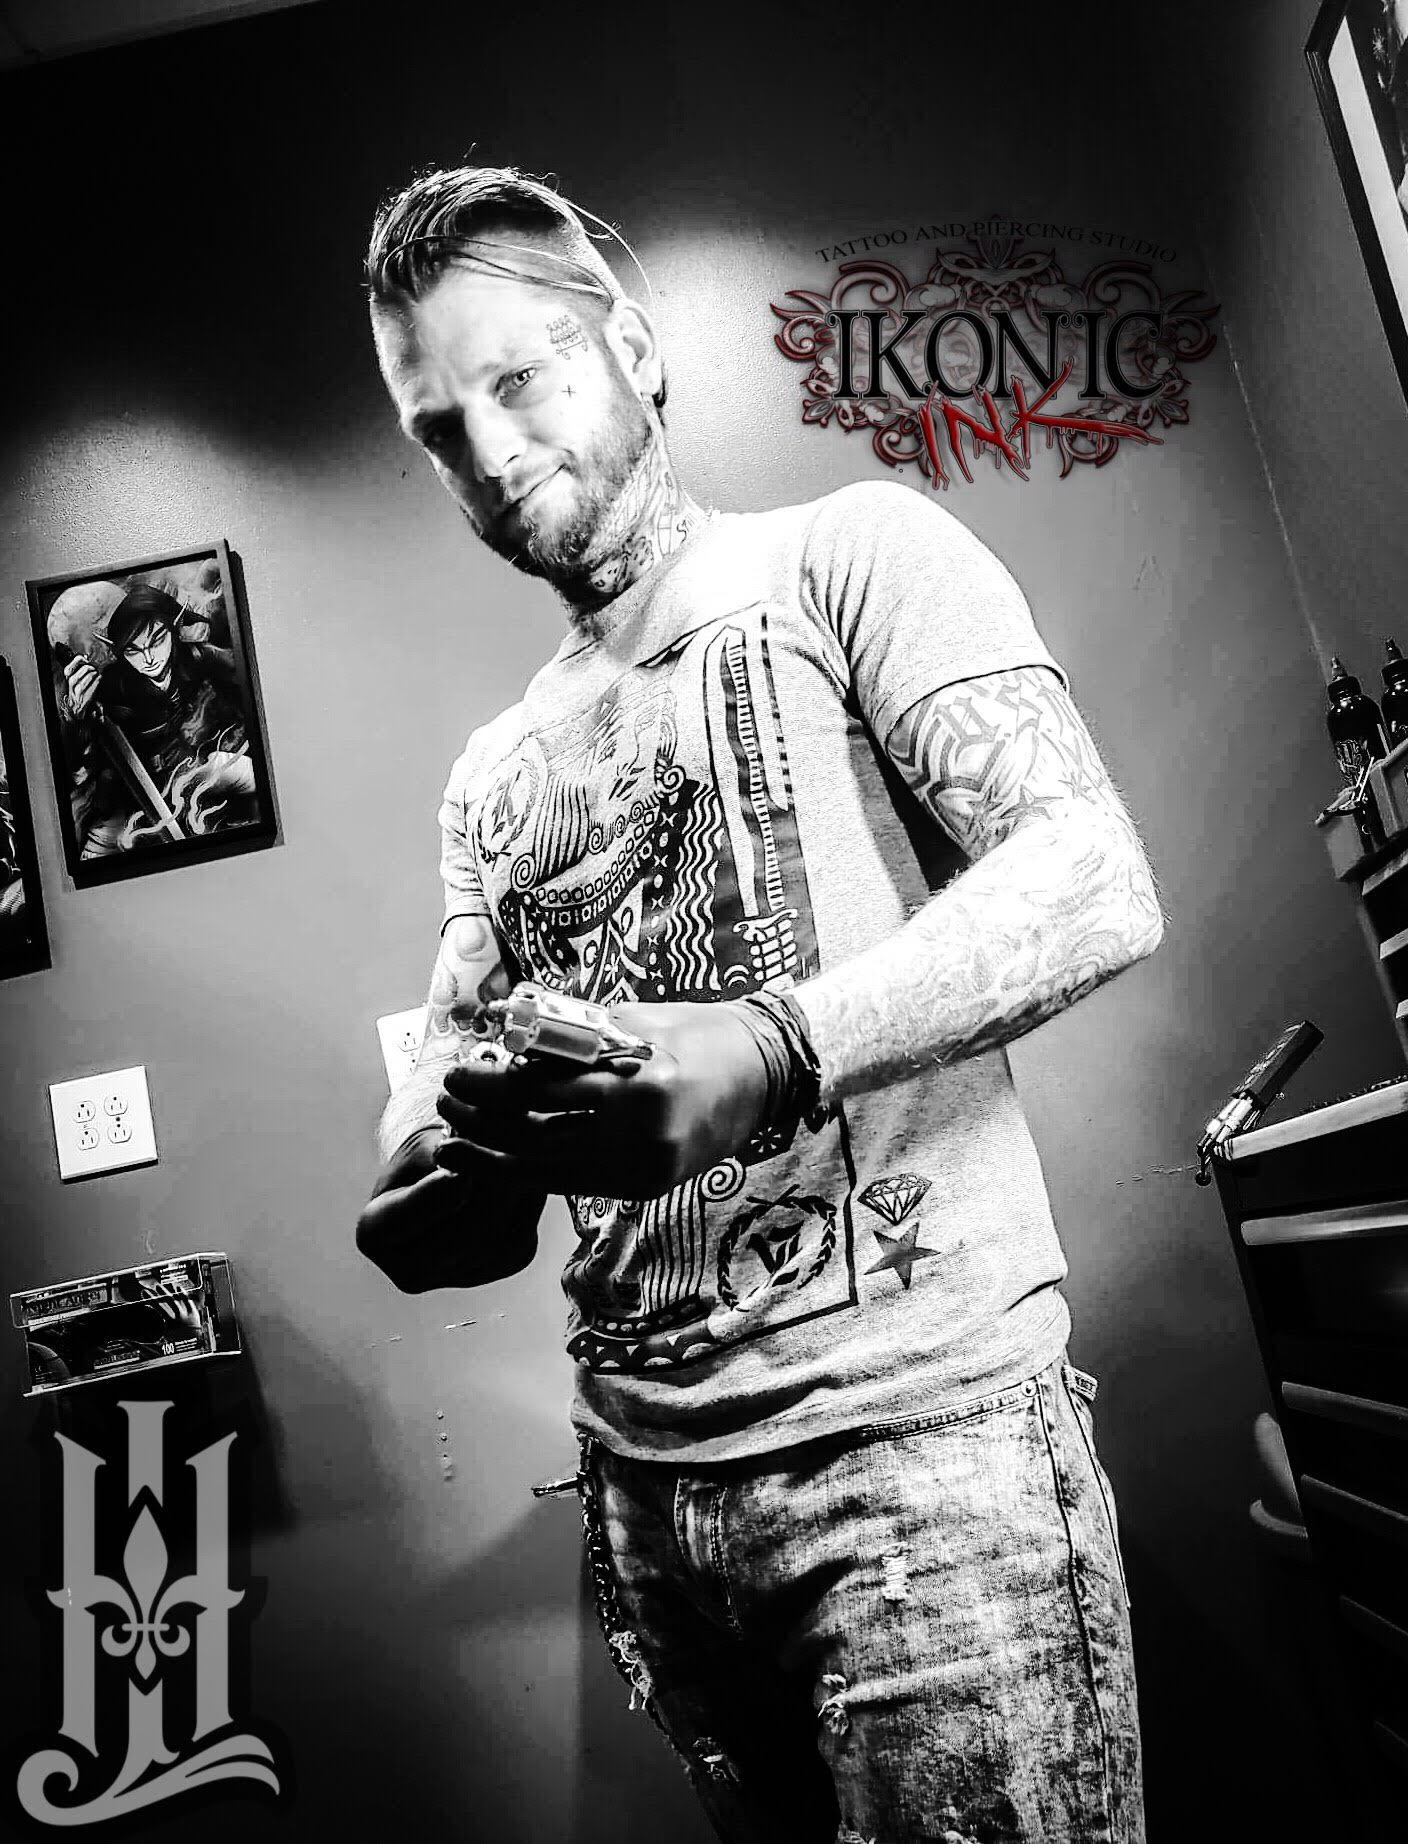 Justin Kephart - Justin has been tattooing professionally for the last 3 years. He prefers fine lines with smooth blends and specializes in black and grey realism and illustrative works but he also tattoos a bit of everything. Click his photo to check out his work!